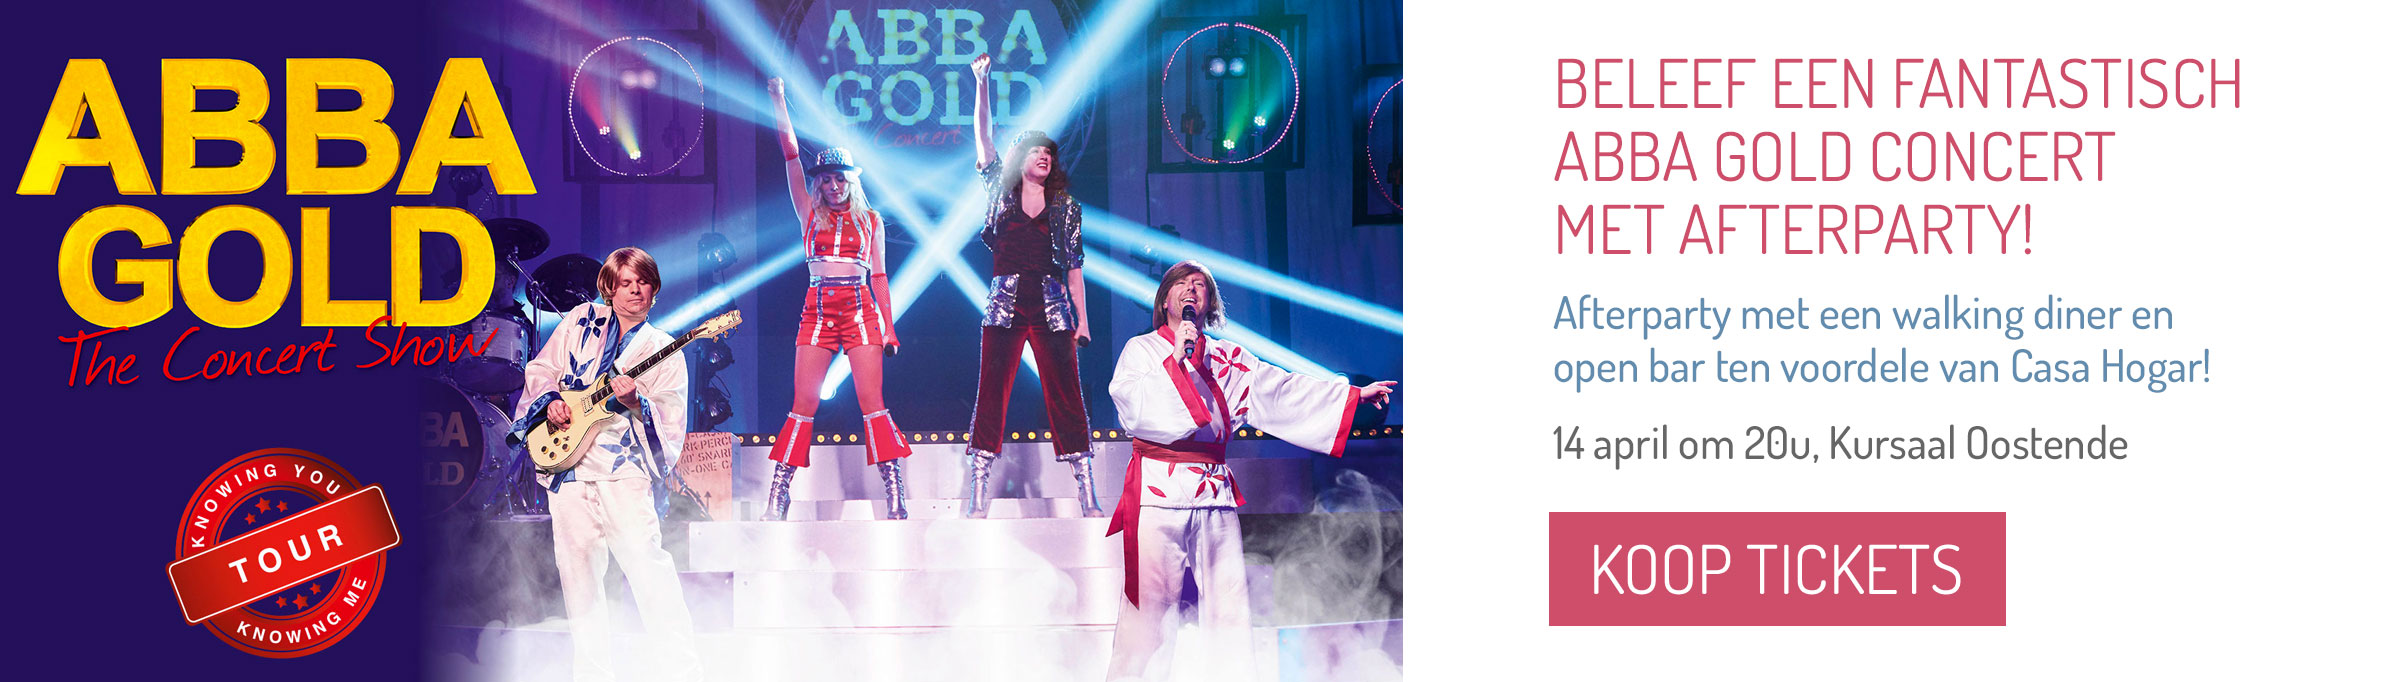 Abba Gold 2020 + afterparty, Kursaal Oostende